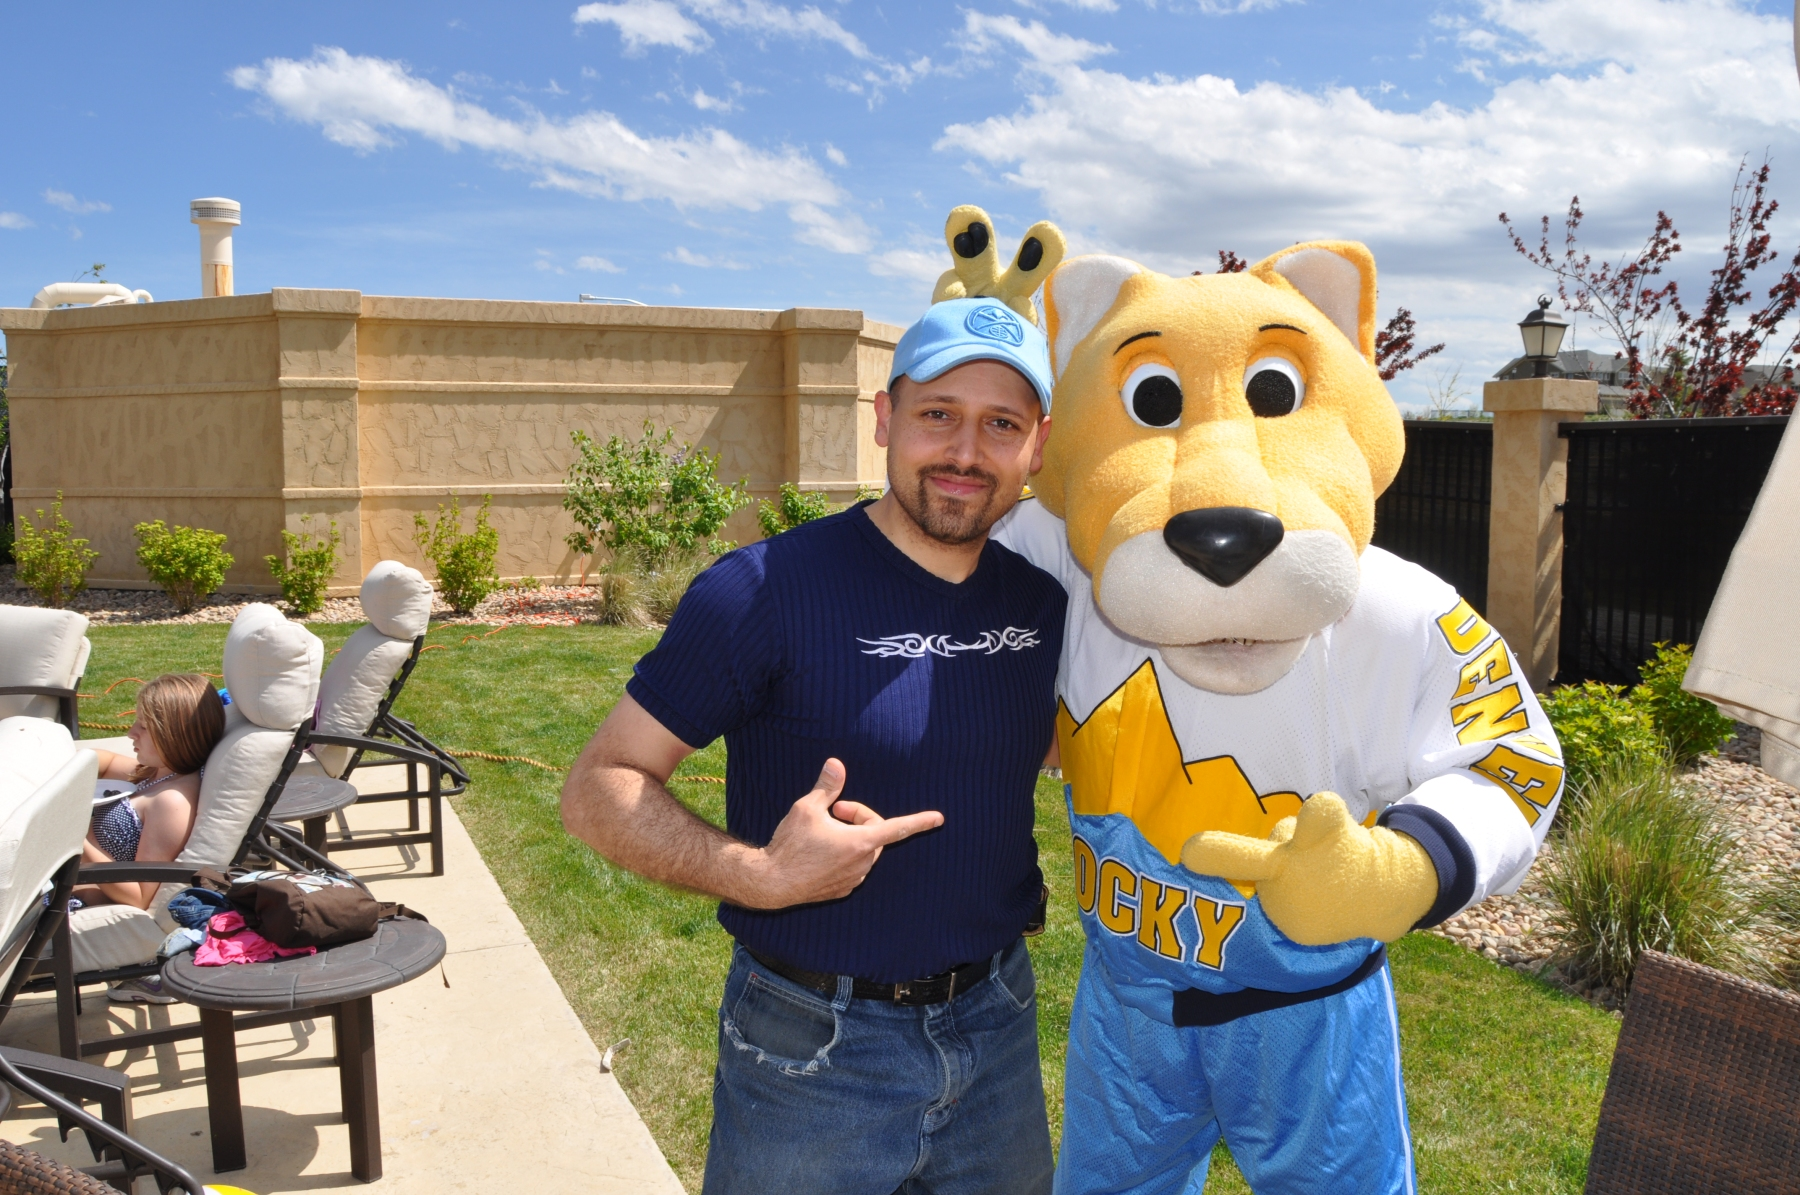 DJ Emir of Denver's Best DJs with Rocky The Denver Nuggets Basketball Team Mascot at a Denver Pool Party